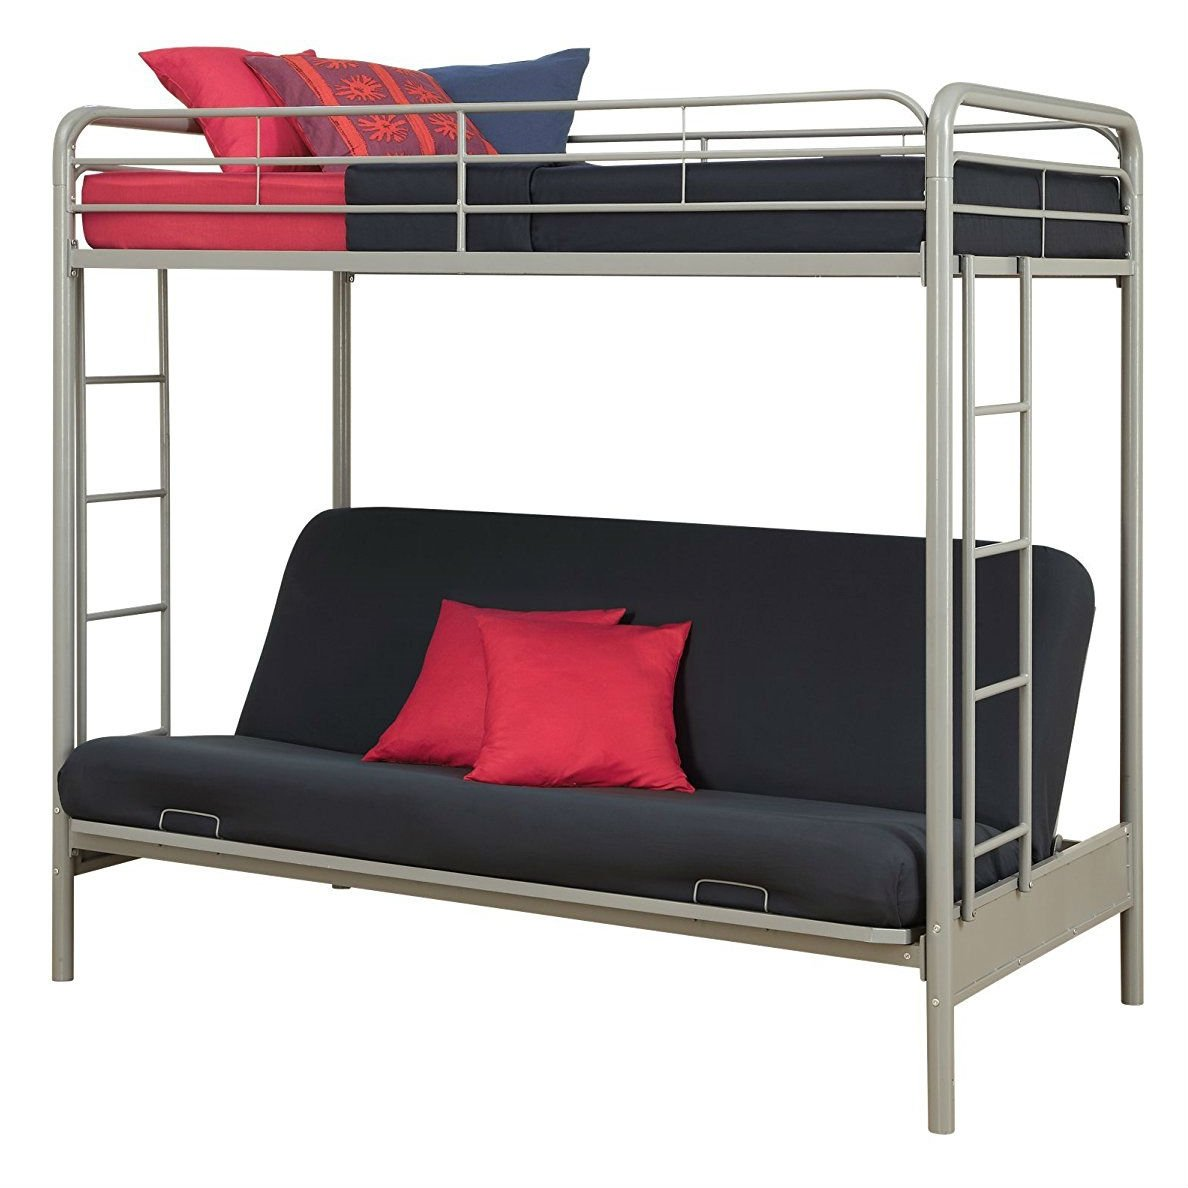 Twin Over Full Futon Bunk Bed In Silver Metal Finish In 2021 Futon Bunk Bed Metal Bunk Beds Bunk Beds With Stairs Full over full futon bunk bed